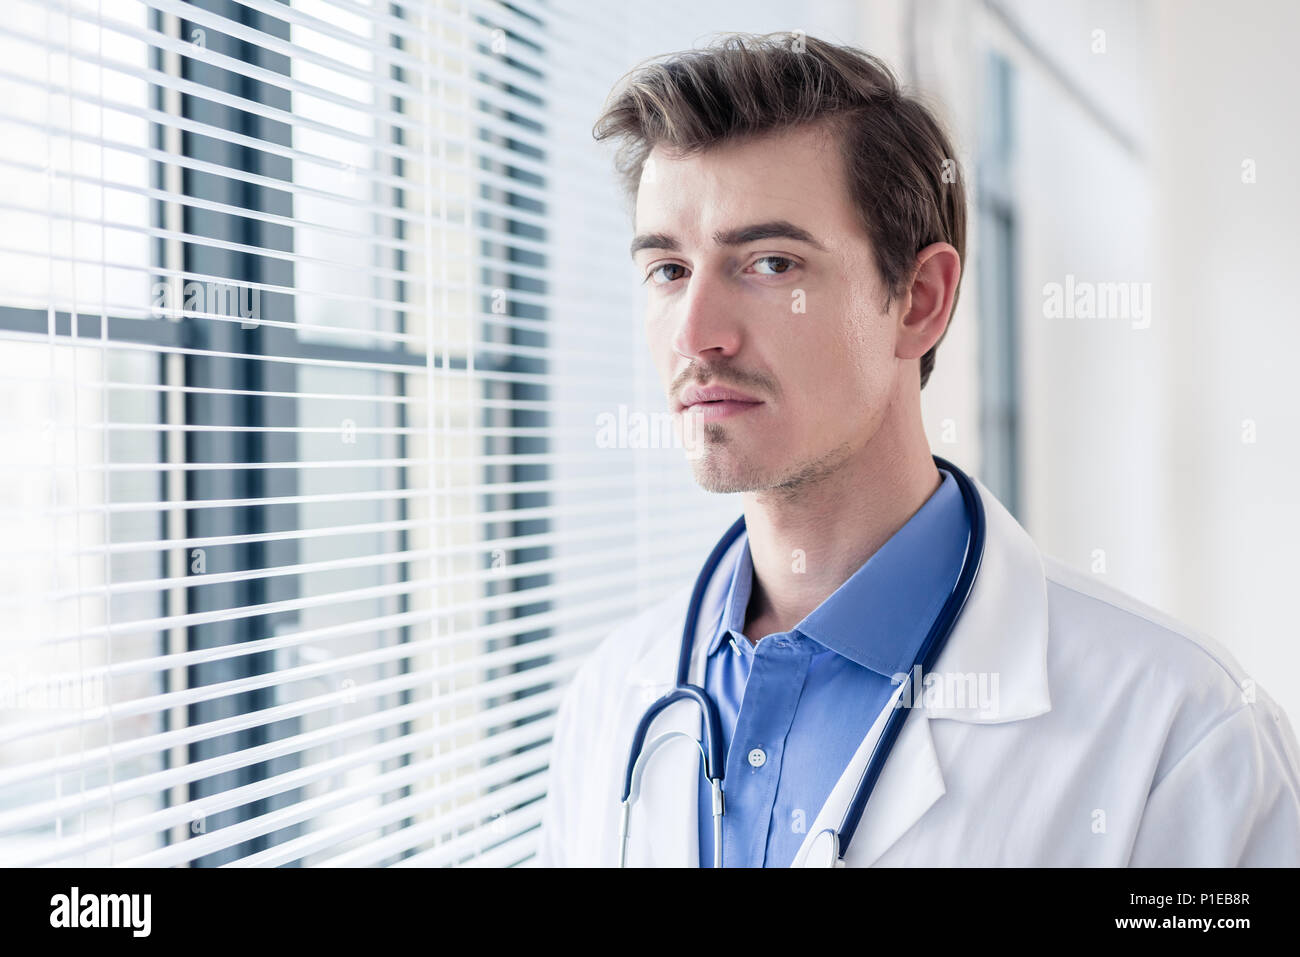 Portrait of a young serious doctor looking at camera with determination Stock Photo